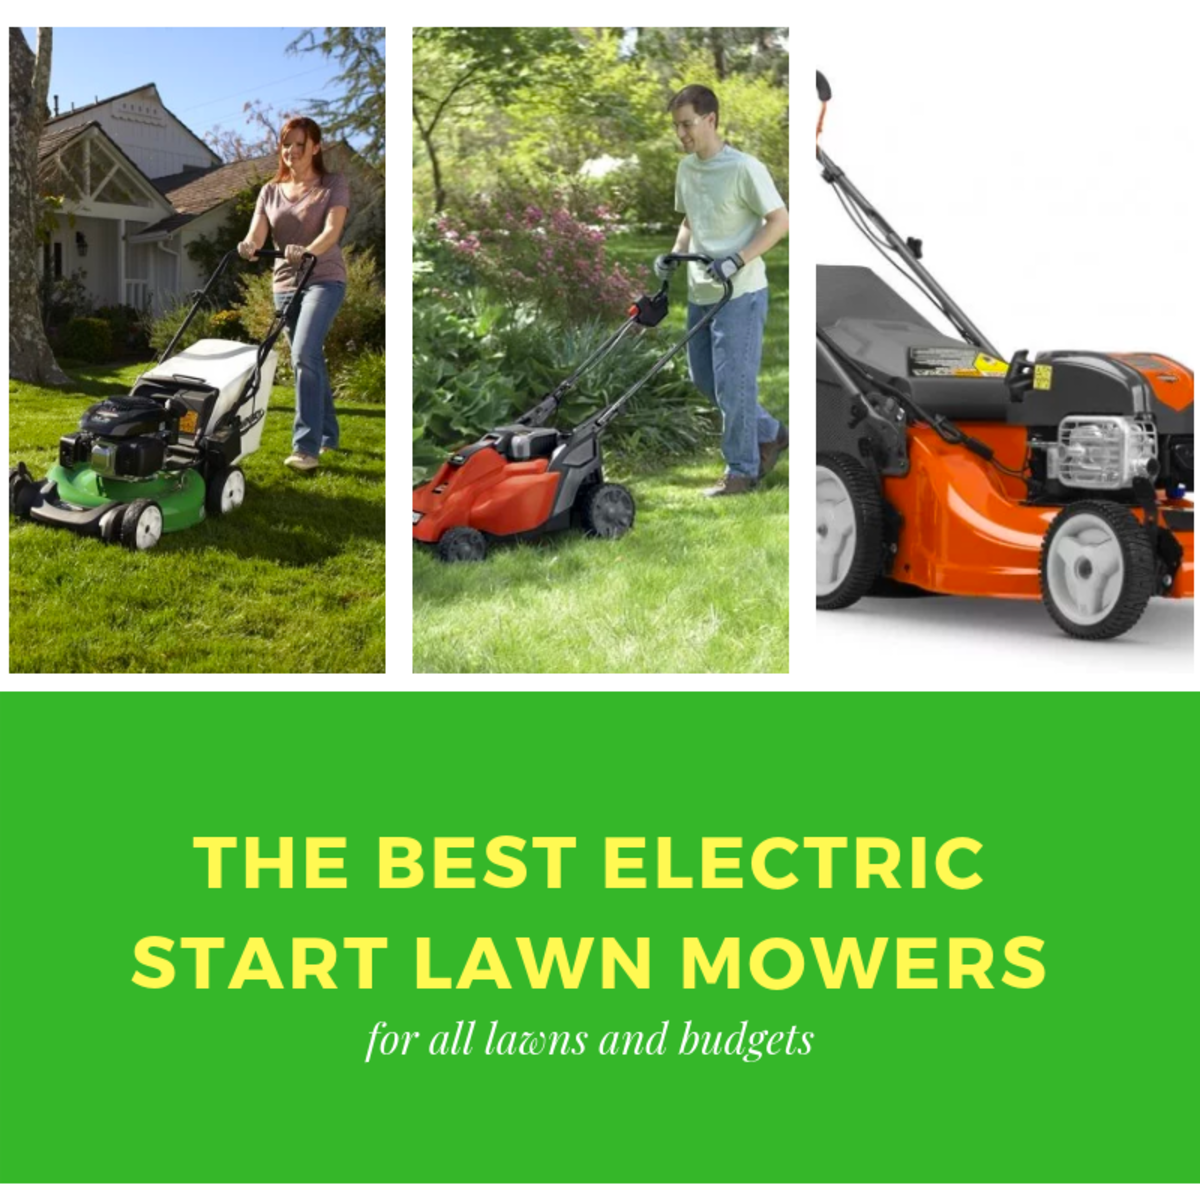 Top 3 Best Electric Start Lawn Mowers 2019 | Dengarden